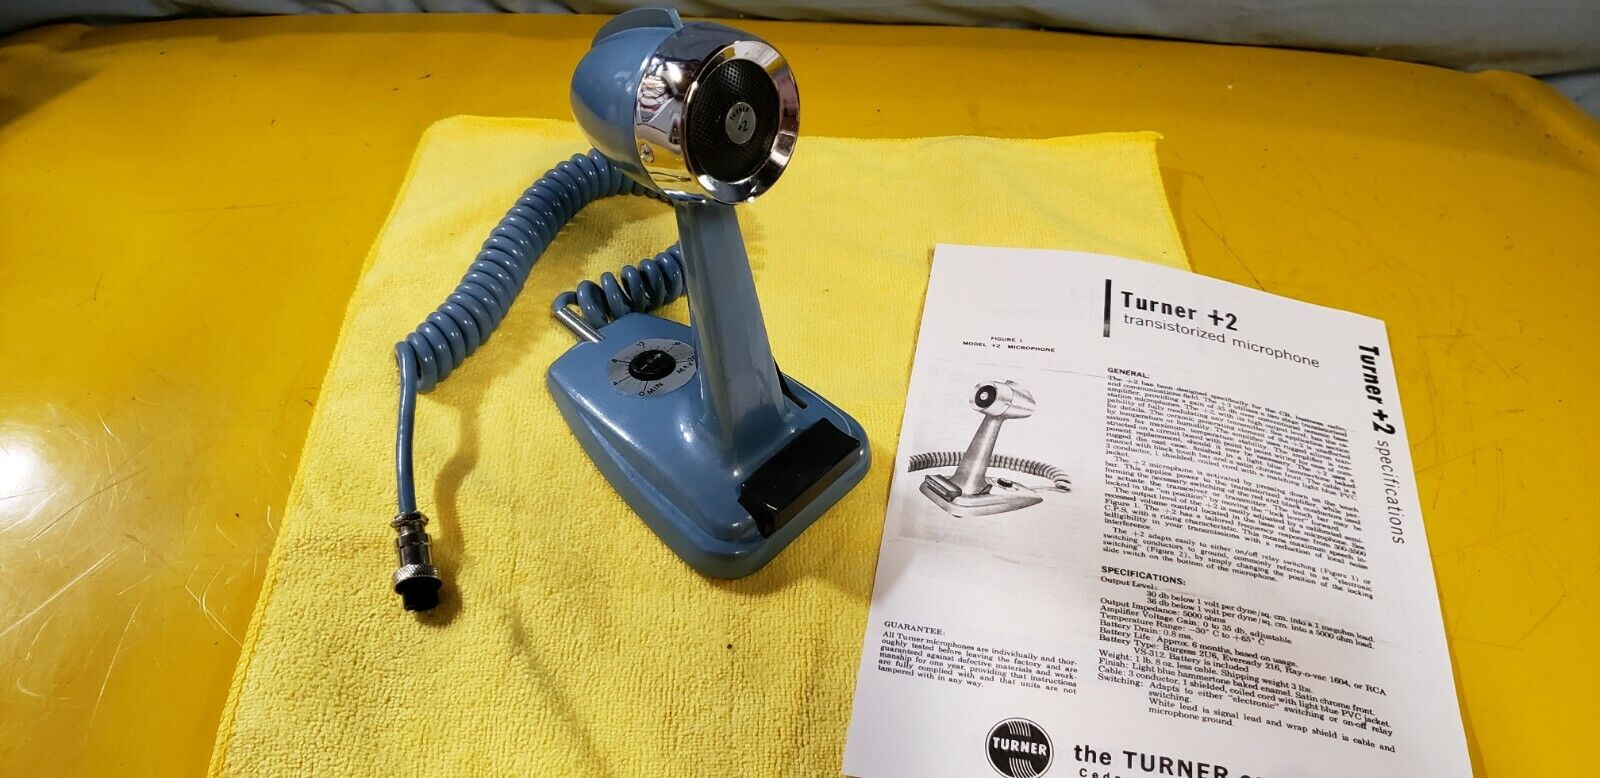 TURNER PLUS 2  DESK MIC * BEAUTIFUL DEEP FINISH * COLLECTORS MAKES U SMILE😊 . Available Now for 269.00